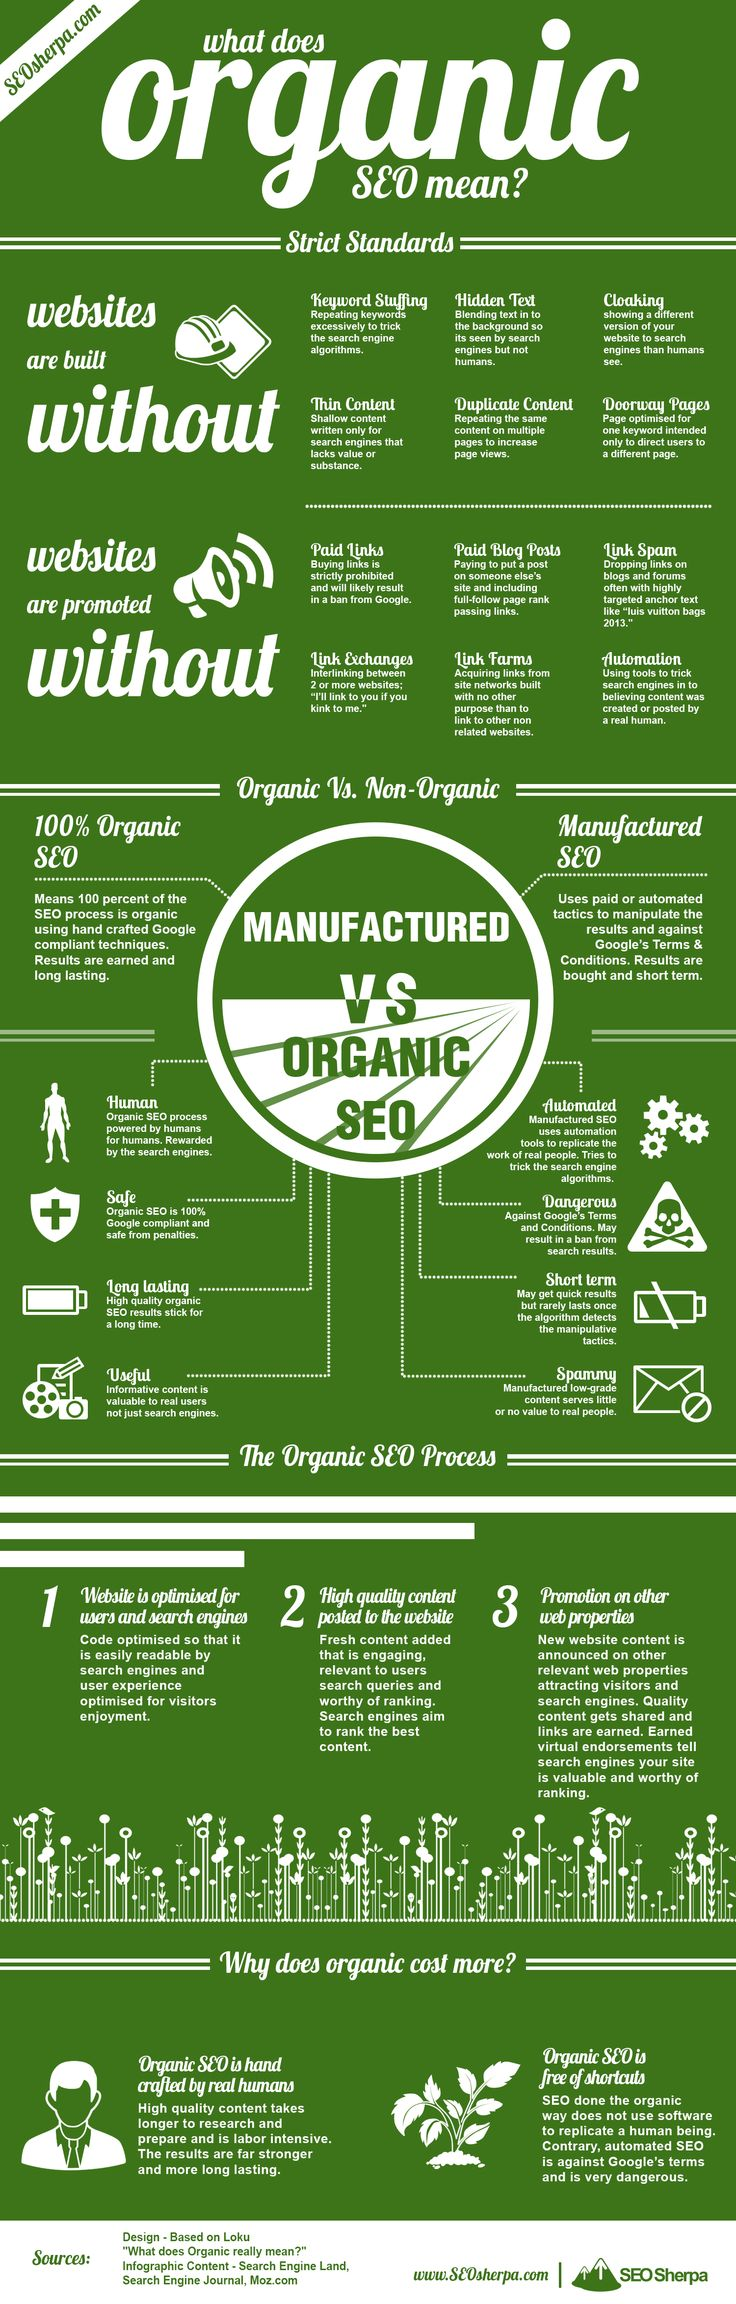 What does organic SEO mean?